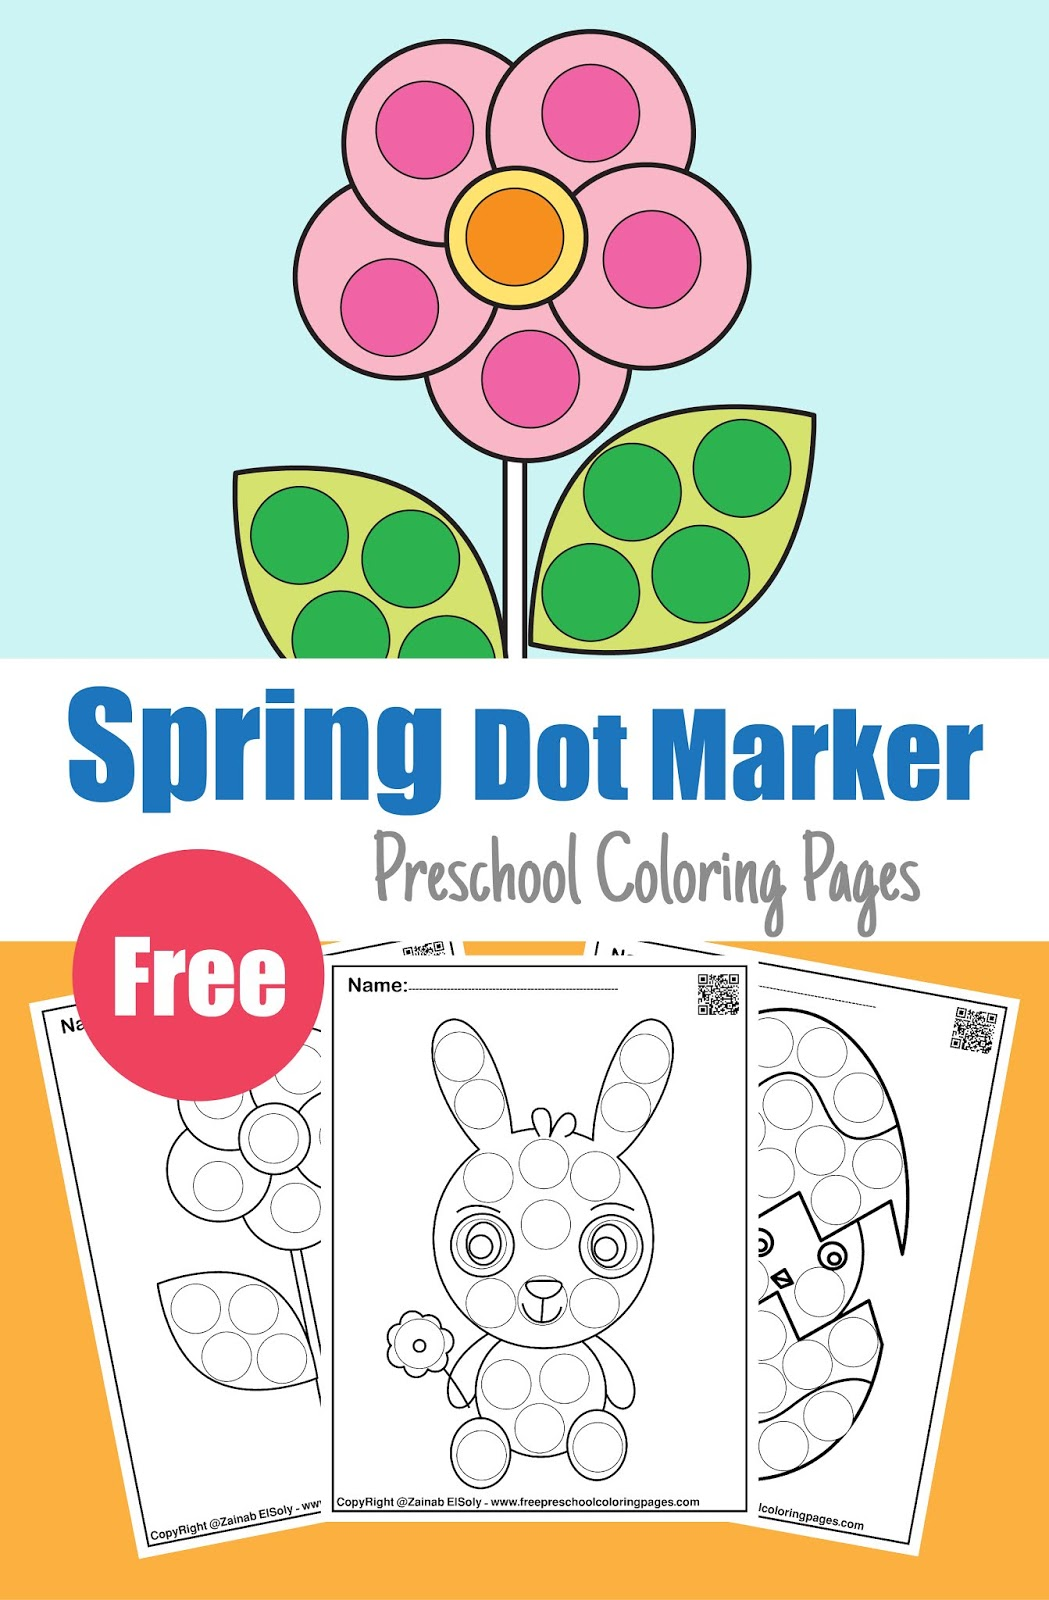 Spring Dot Marker Free Coloring Pages